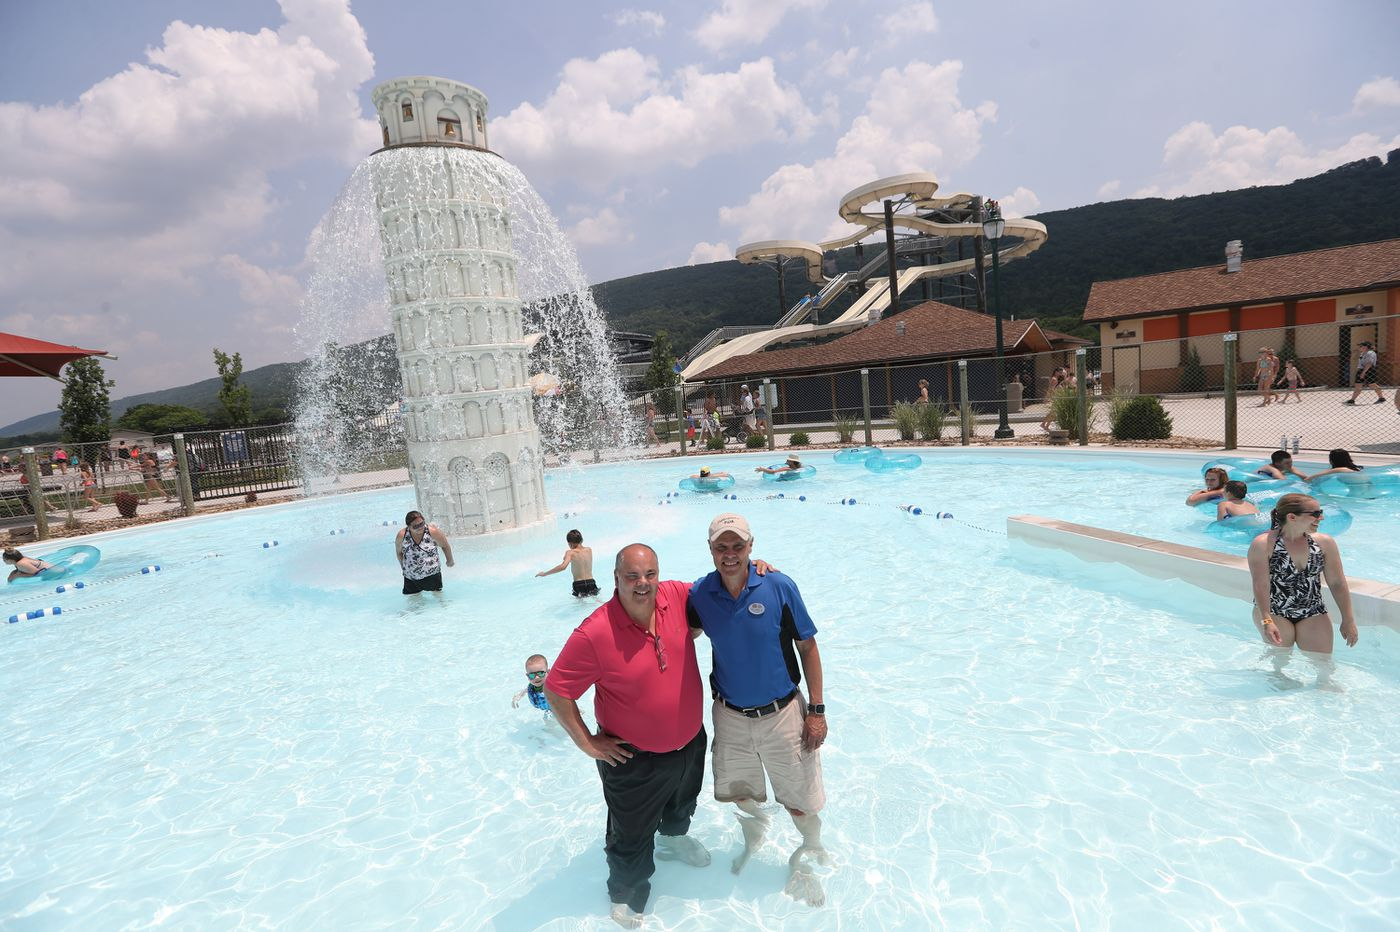 Pisa, pasta sauce, Philly cheesesteaks: DelGrosso's is a Pa. water park fit for a Caesar | Maria Panaritis